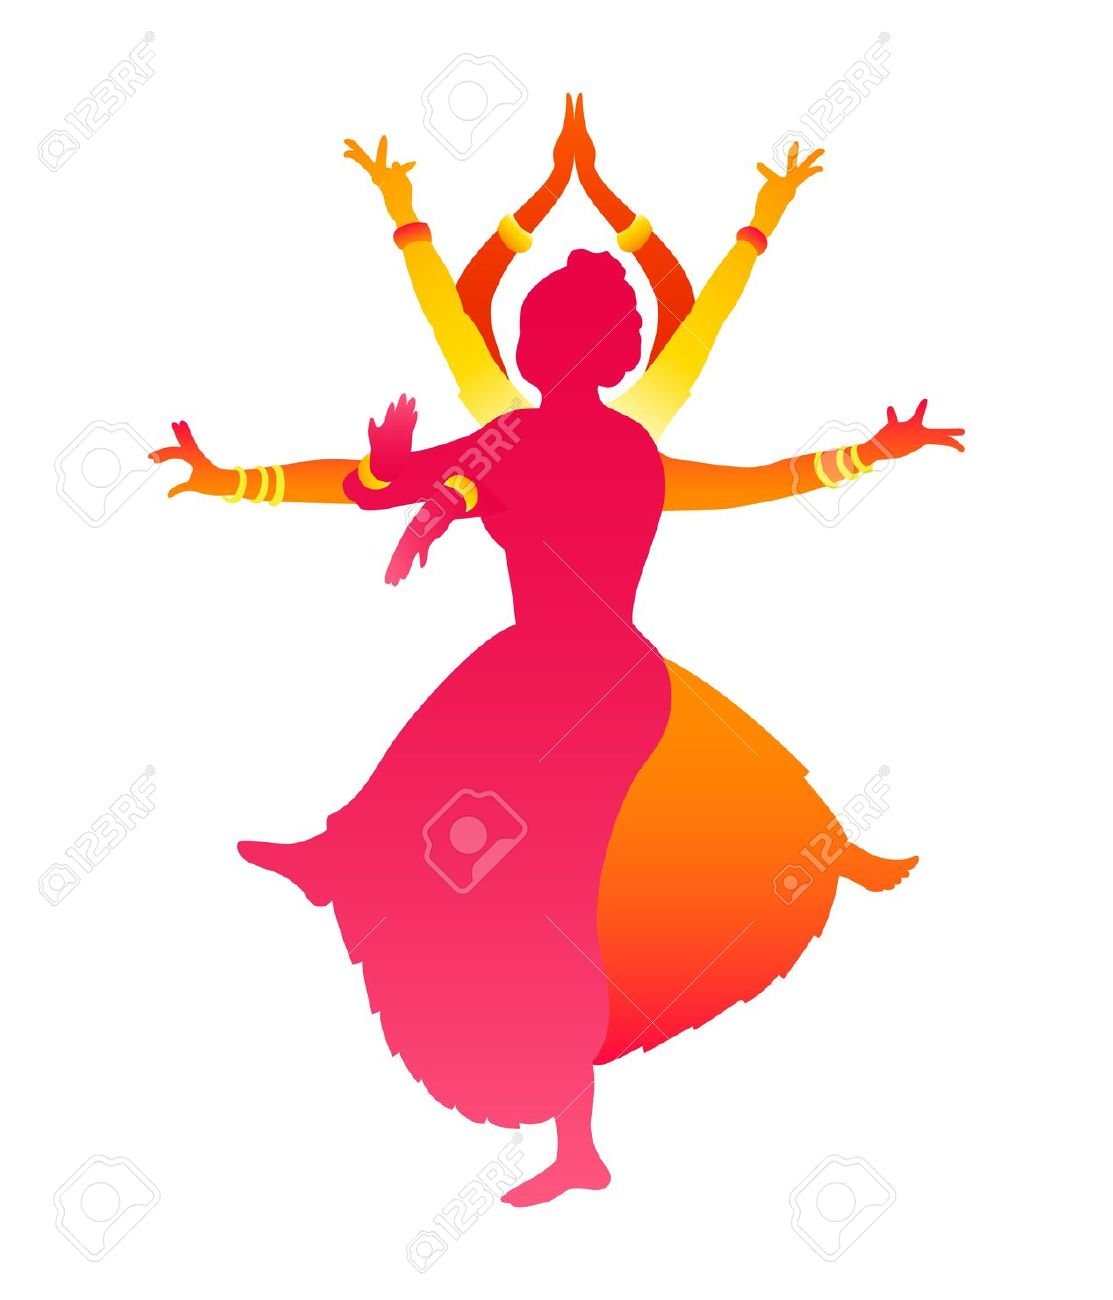 Indian clipart group dance Colorful vector of Traditional 'Silhouettes